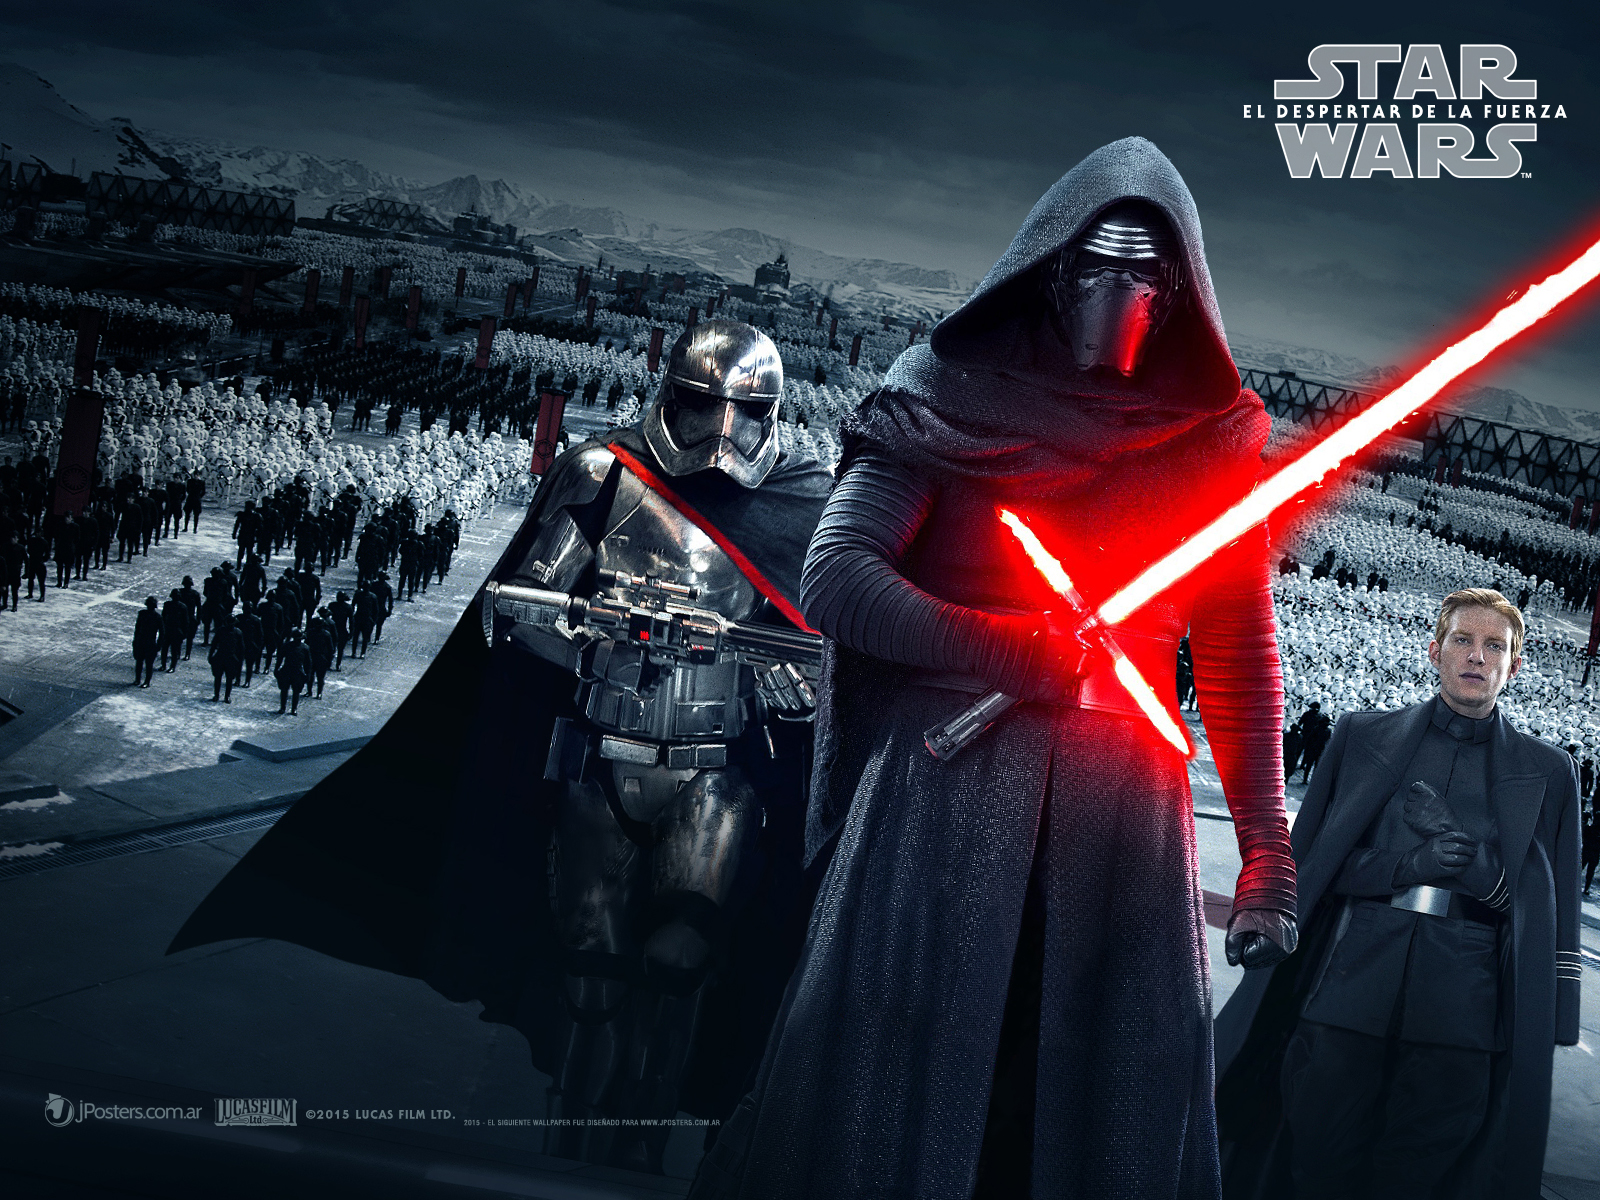 Episode VII 8 wallpapers of Star Wars   The Force Awakens   Tiwula 1600x1200